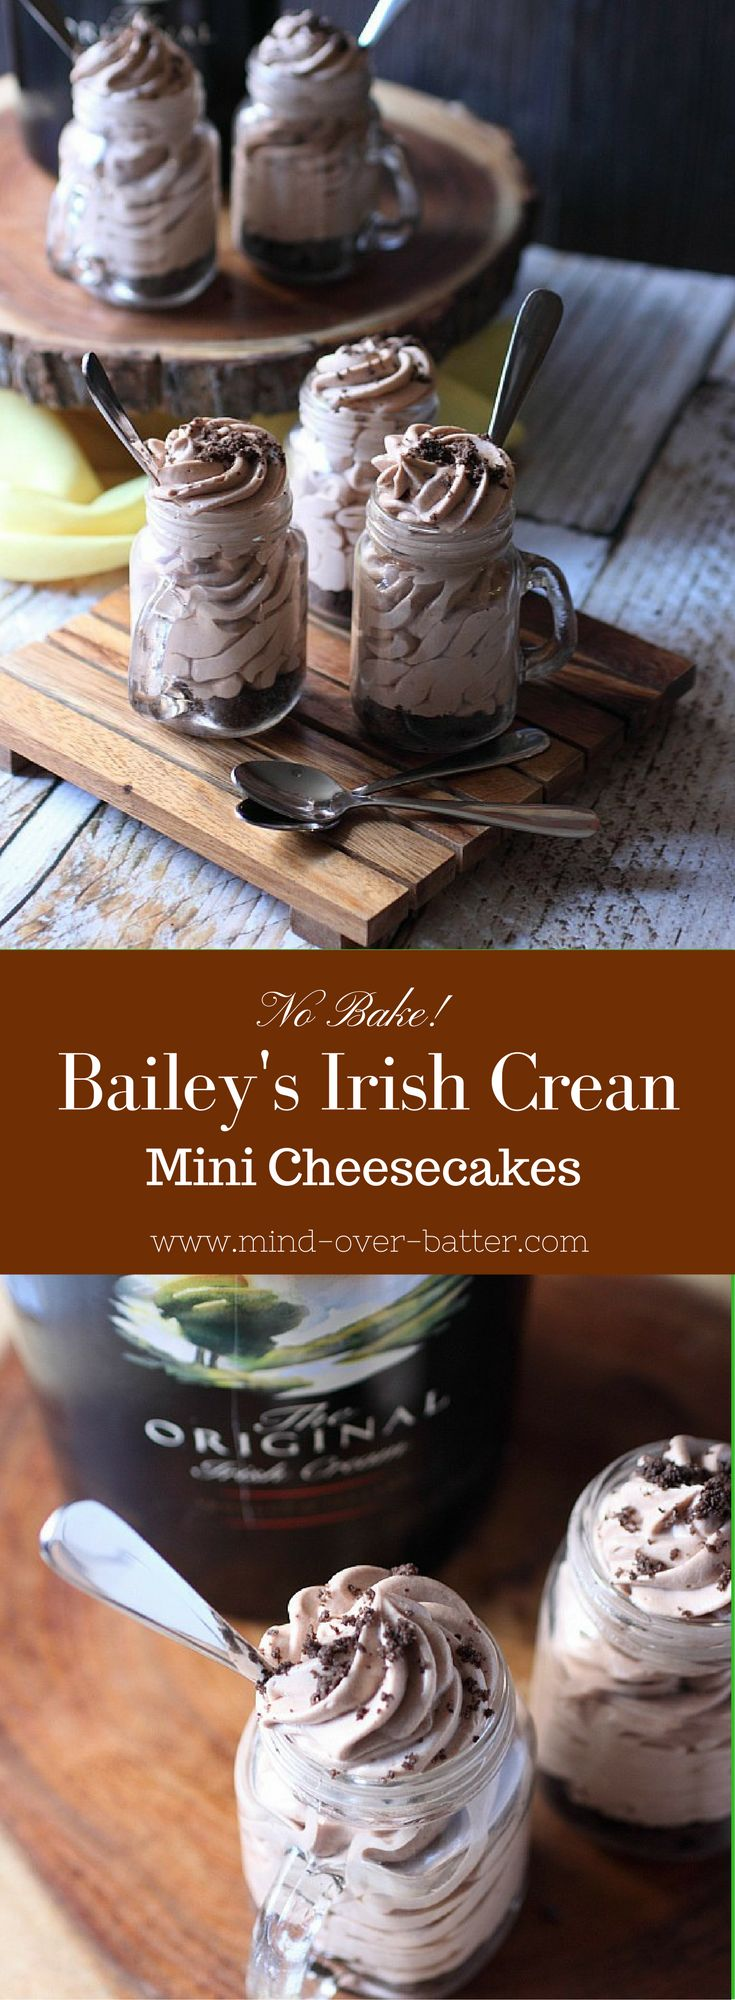 No Bake Bailey's Irish Cream Mini Cheesecakes